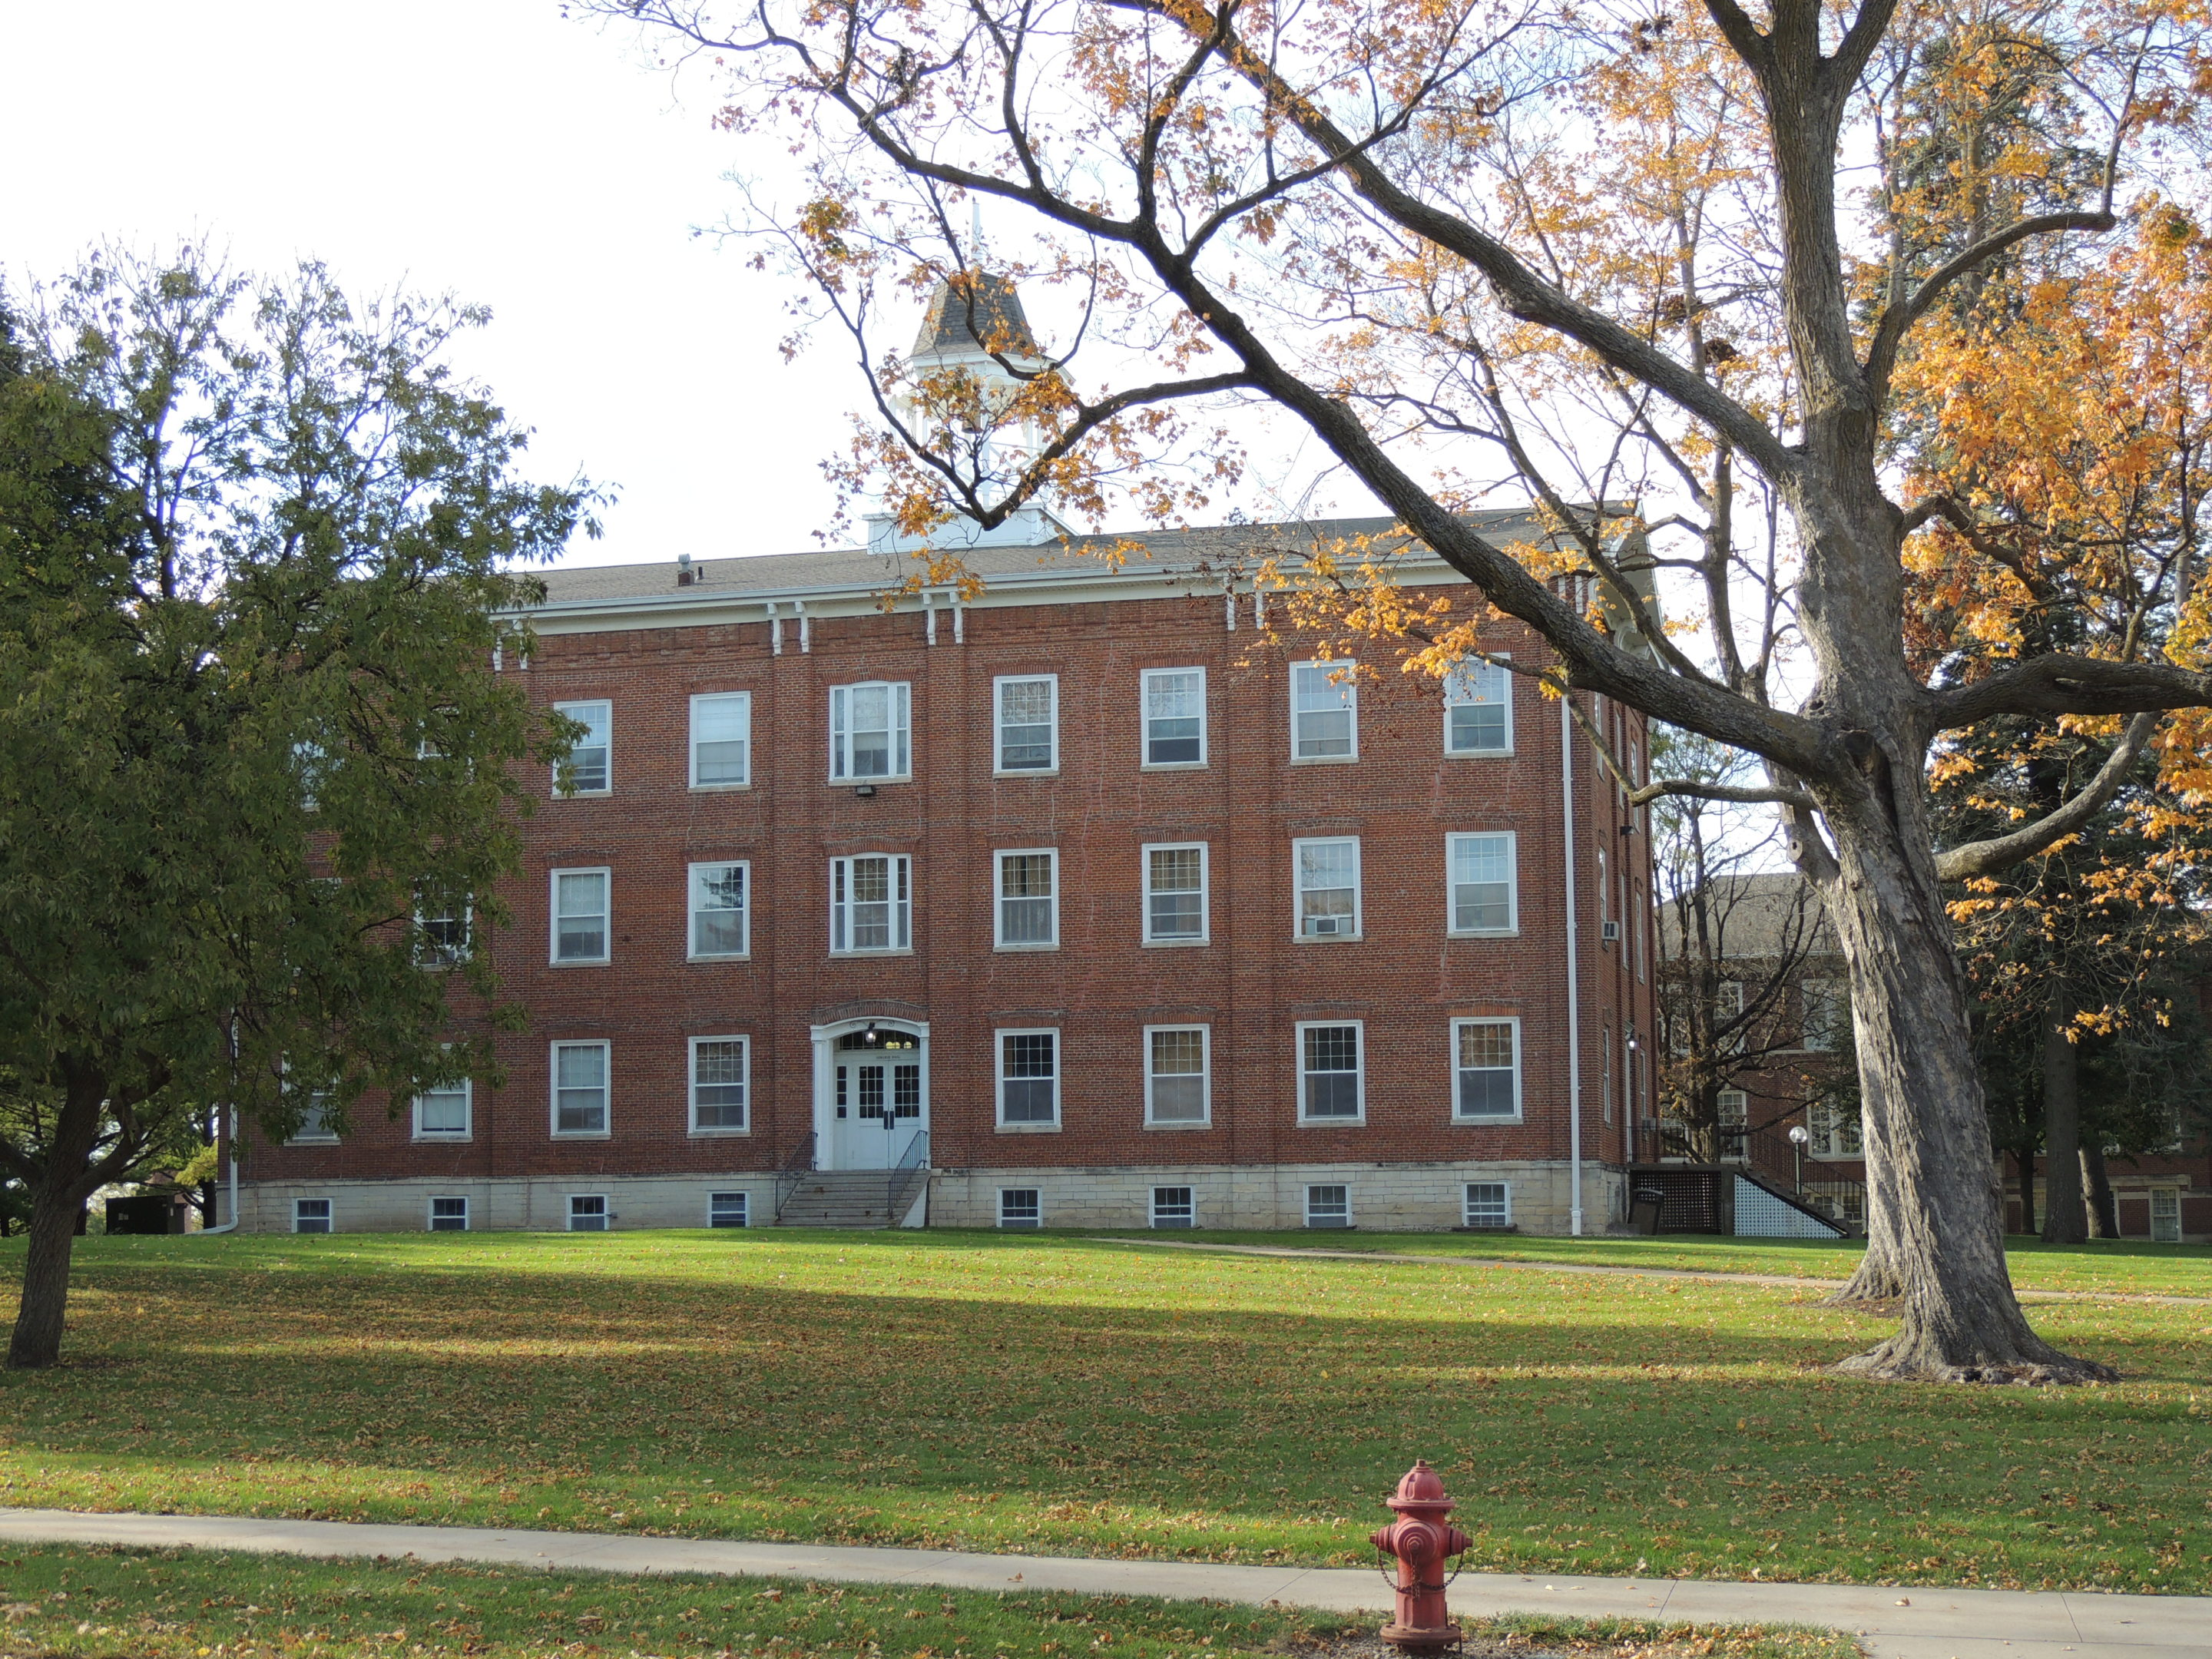 Photo of College Hall